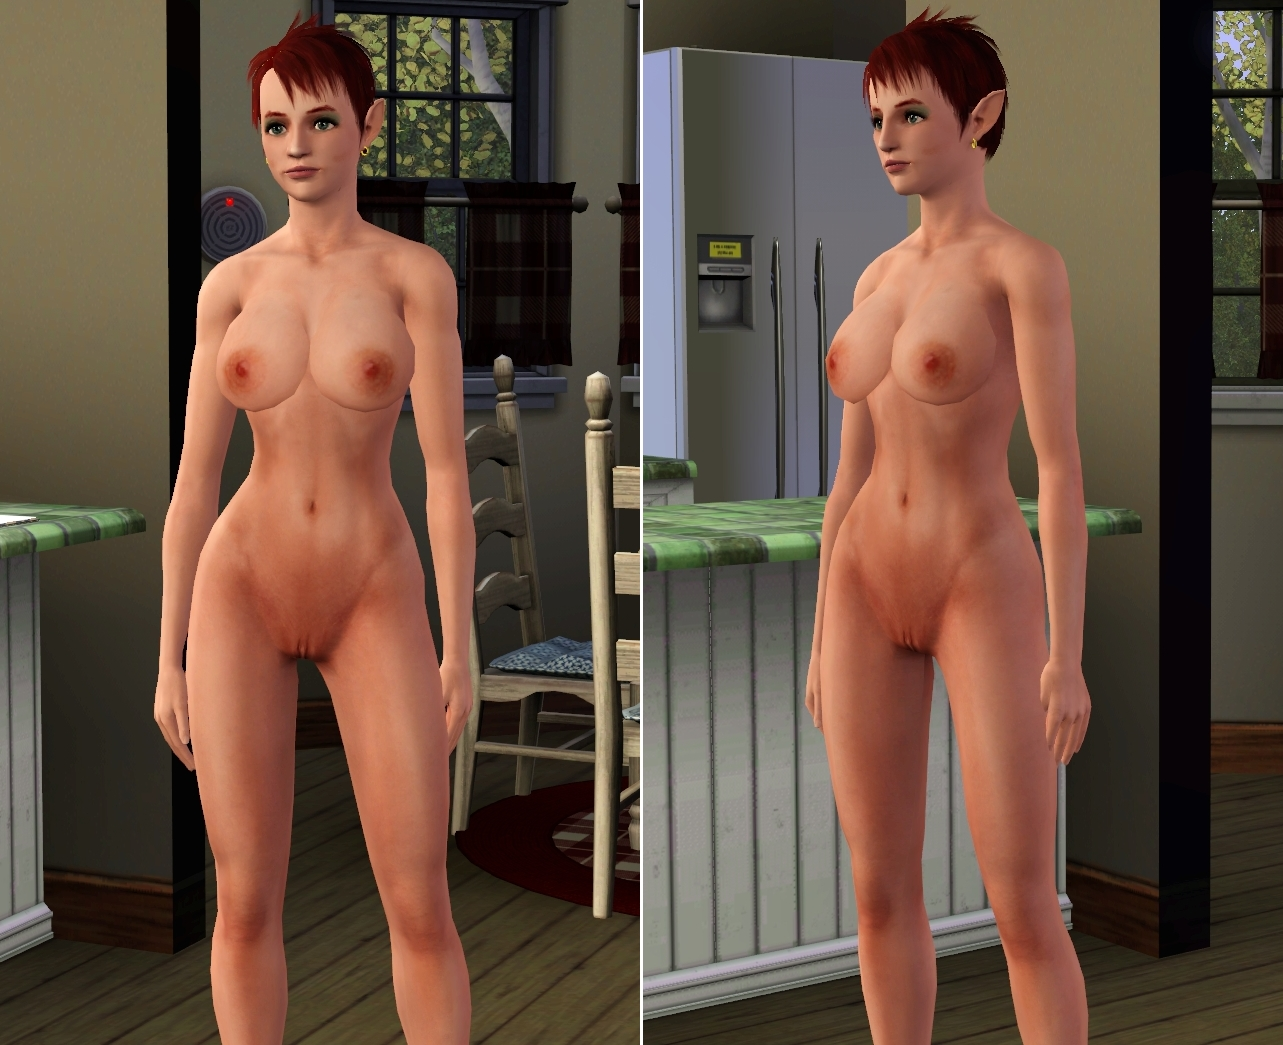 The sims 2 male nude skins porn movie